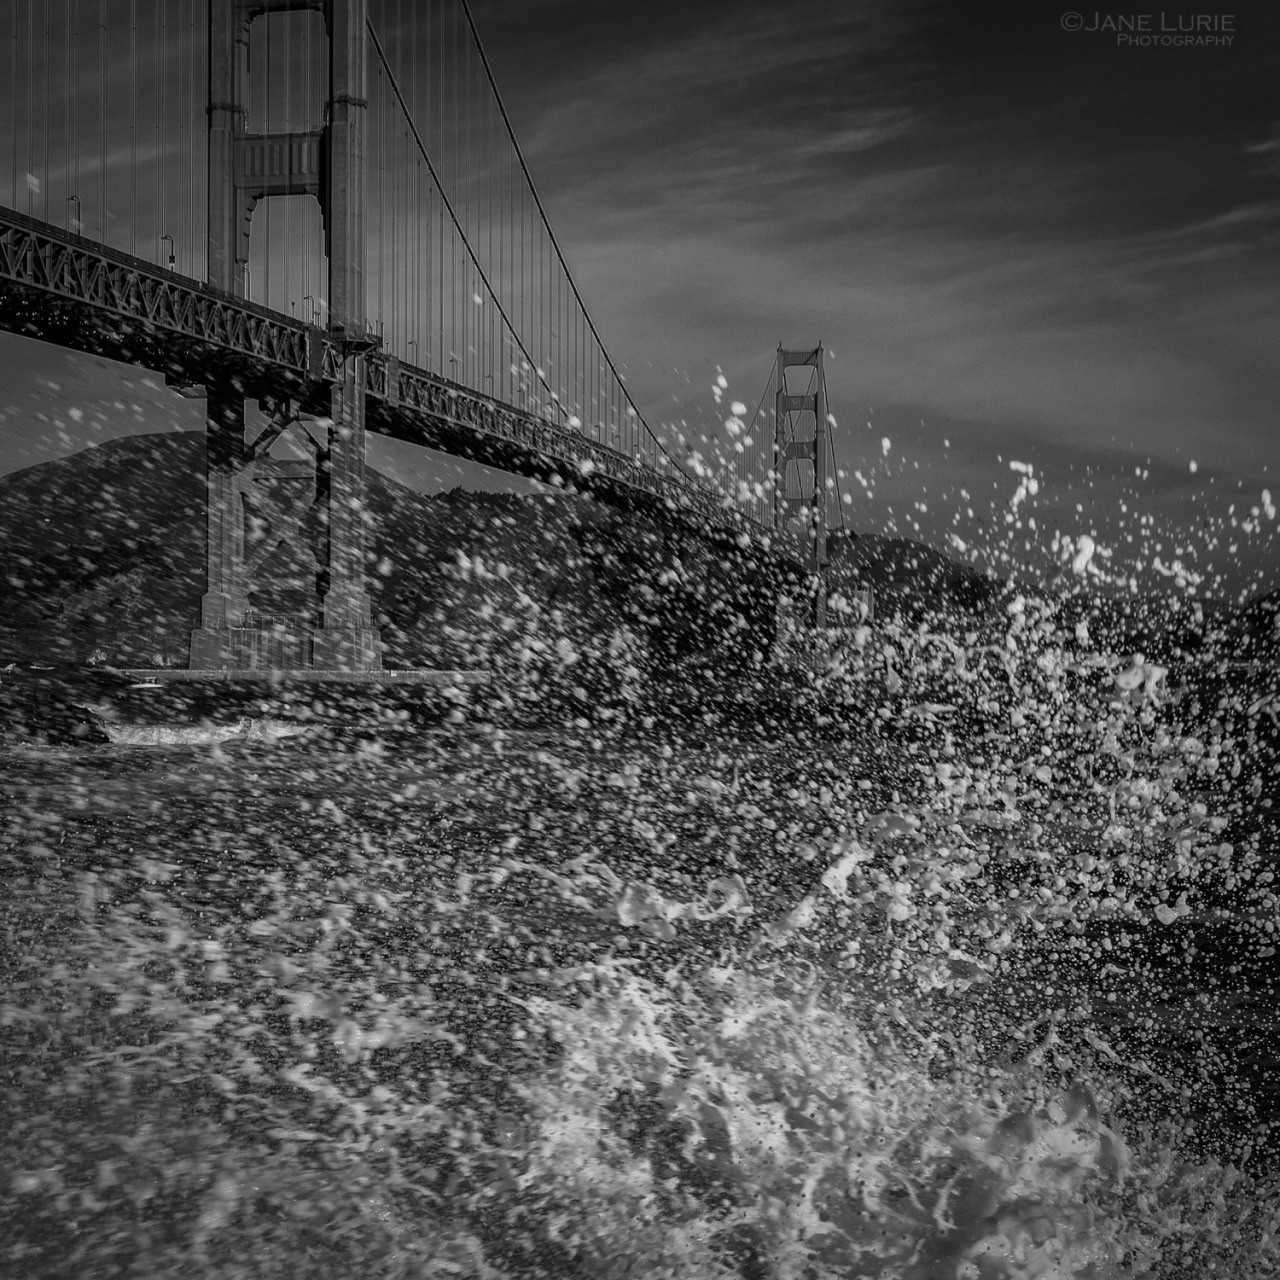 San Francisco, Golden Gate, Landscape, Monochrome, Action, Nature, Photography